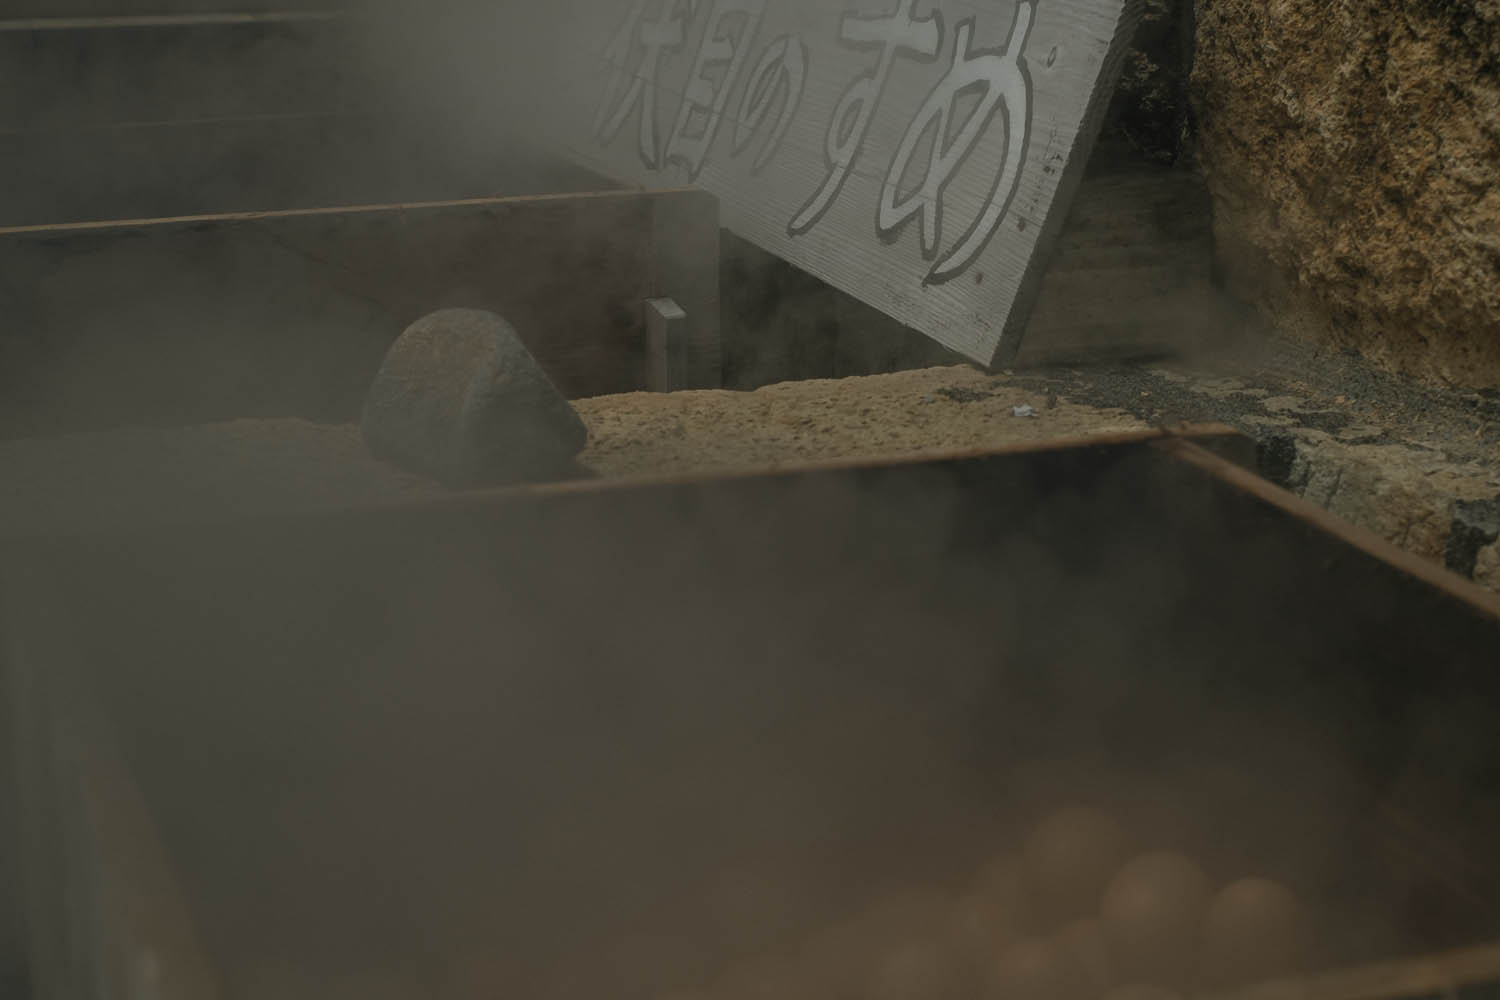 Eggs being cooked by the steam coming up from the ground, Ibusuki.